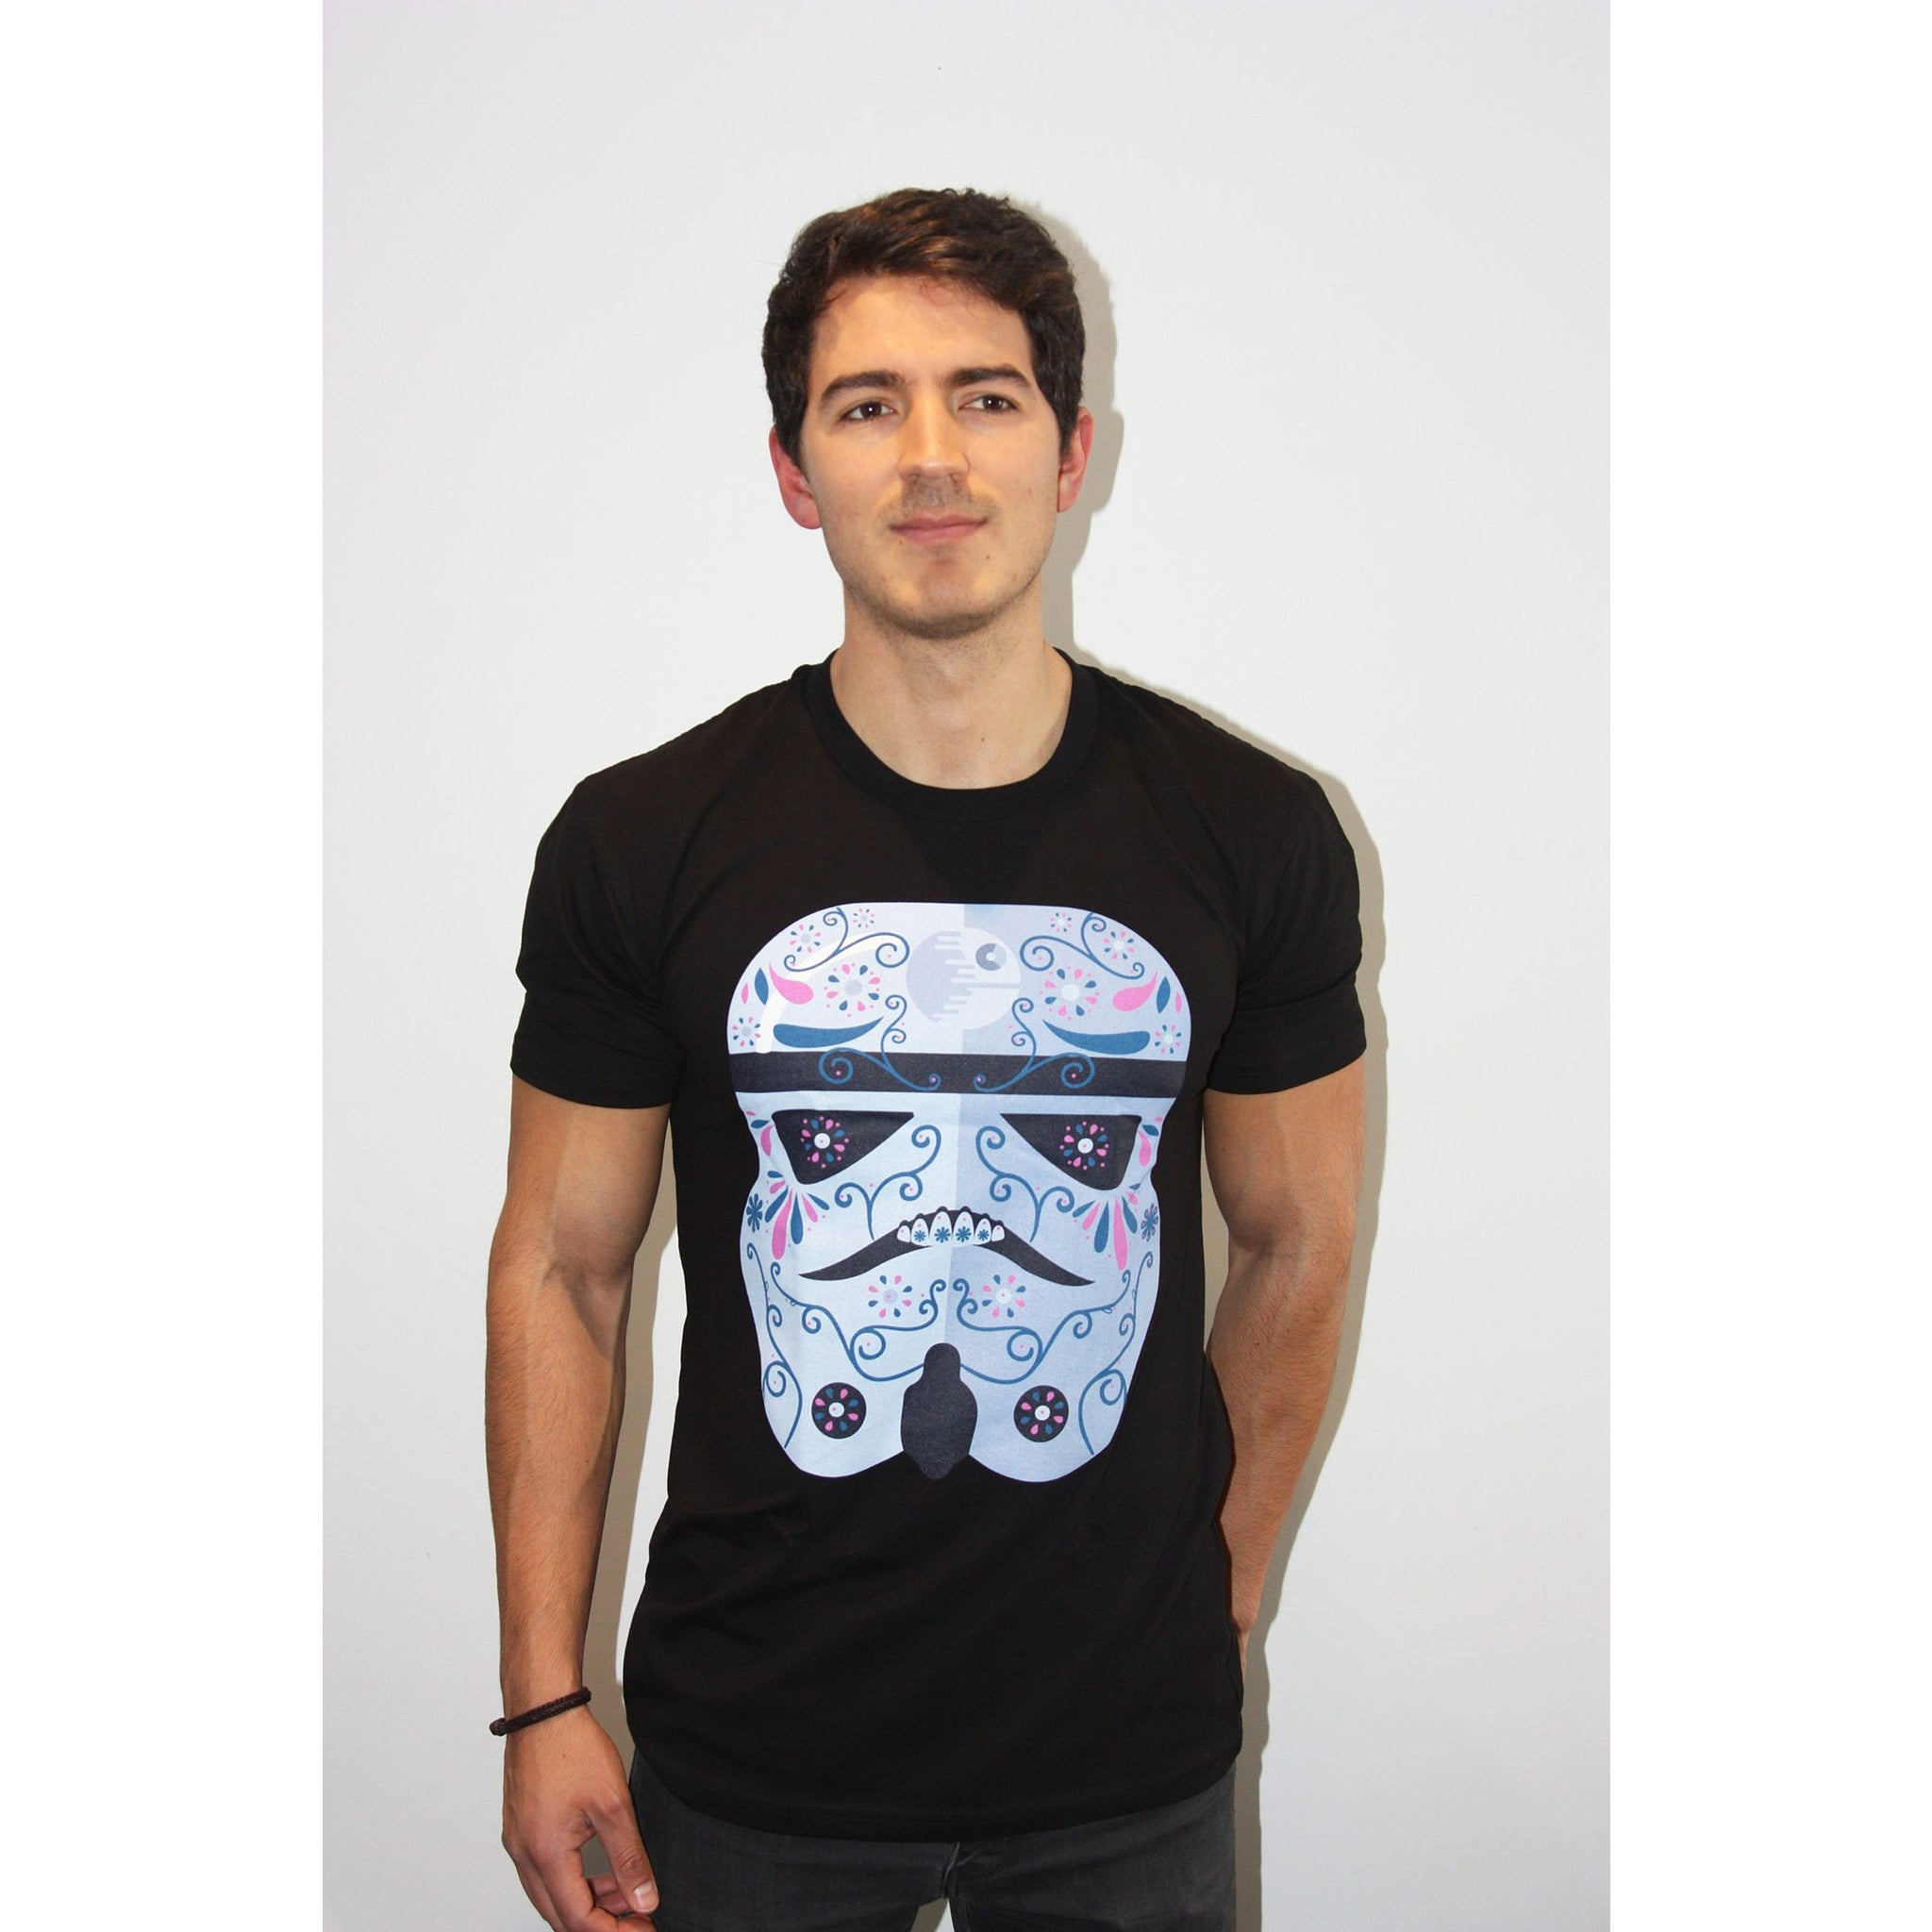 Storm Trooper Day of the Dead T Shirt - Mexican Wrestling Masks - Lucha Libre Mask